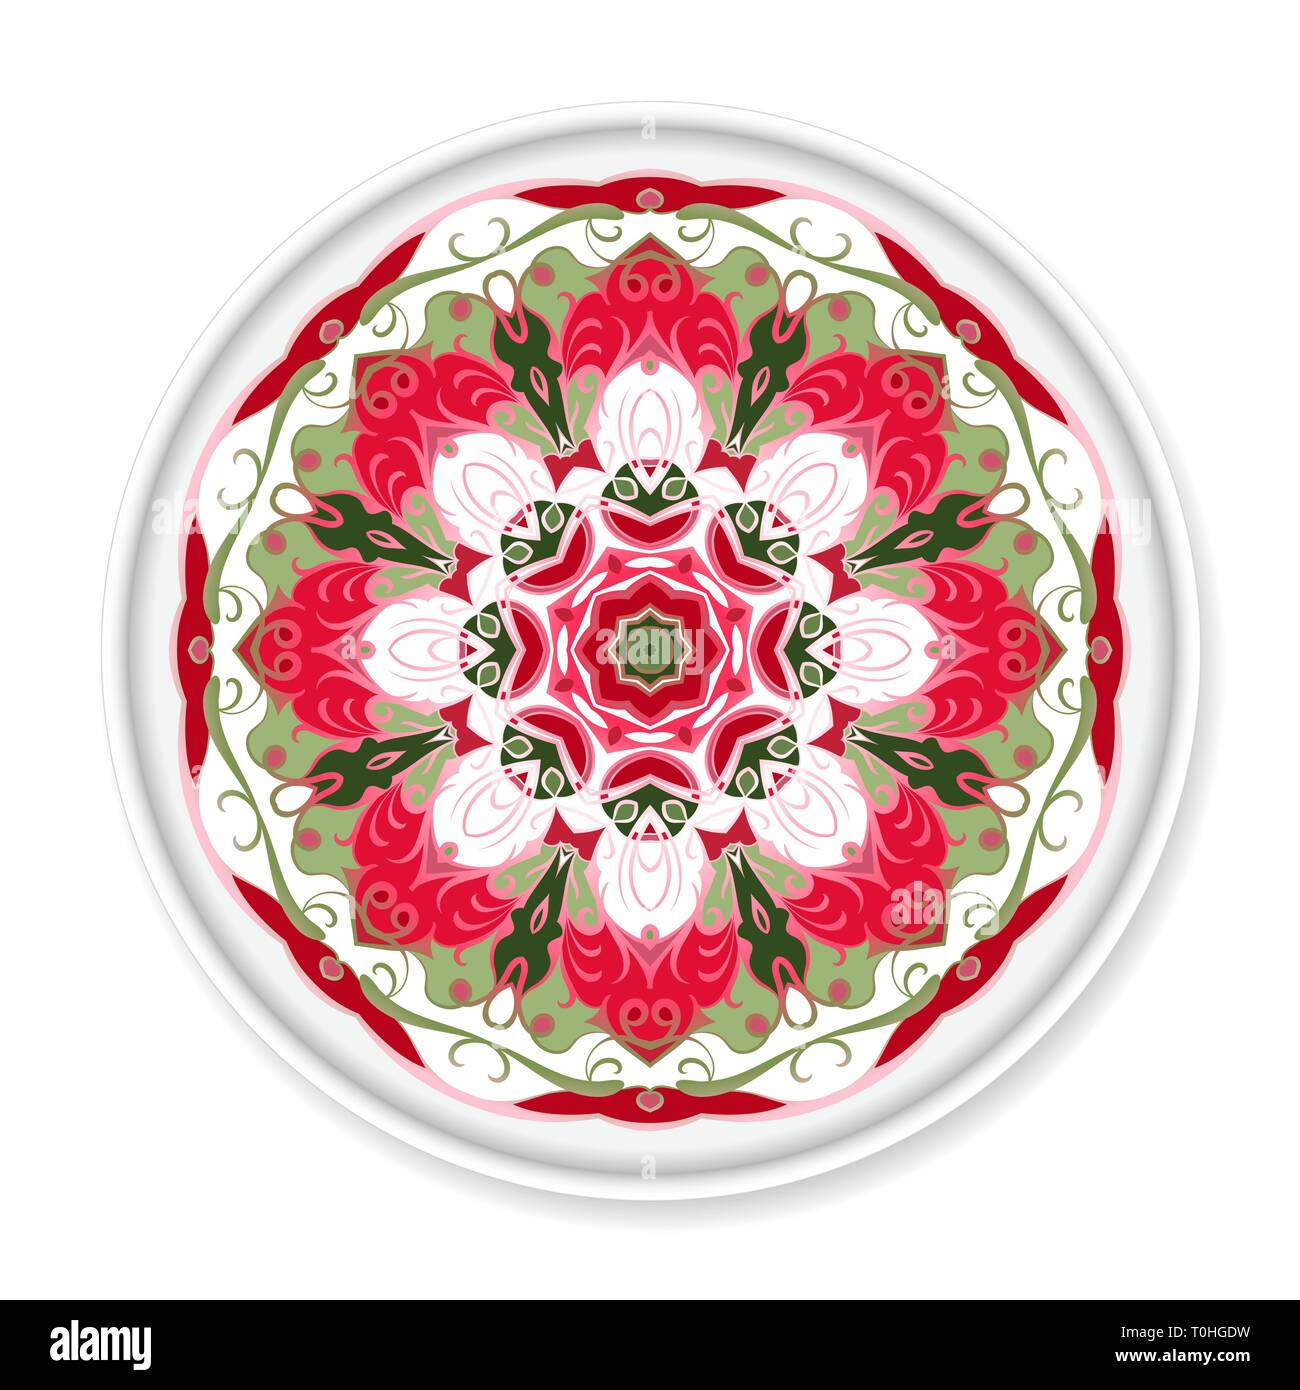 Colorful decorative plate with pattern on white background. Home ...